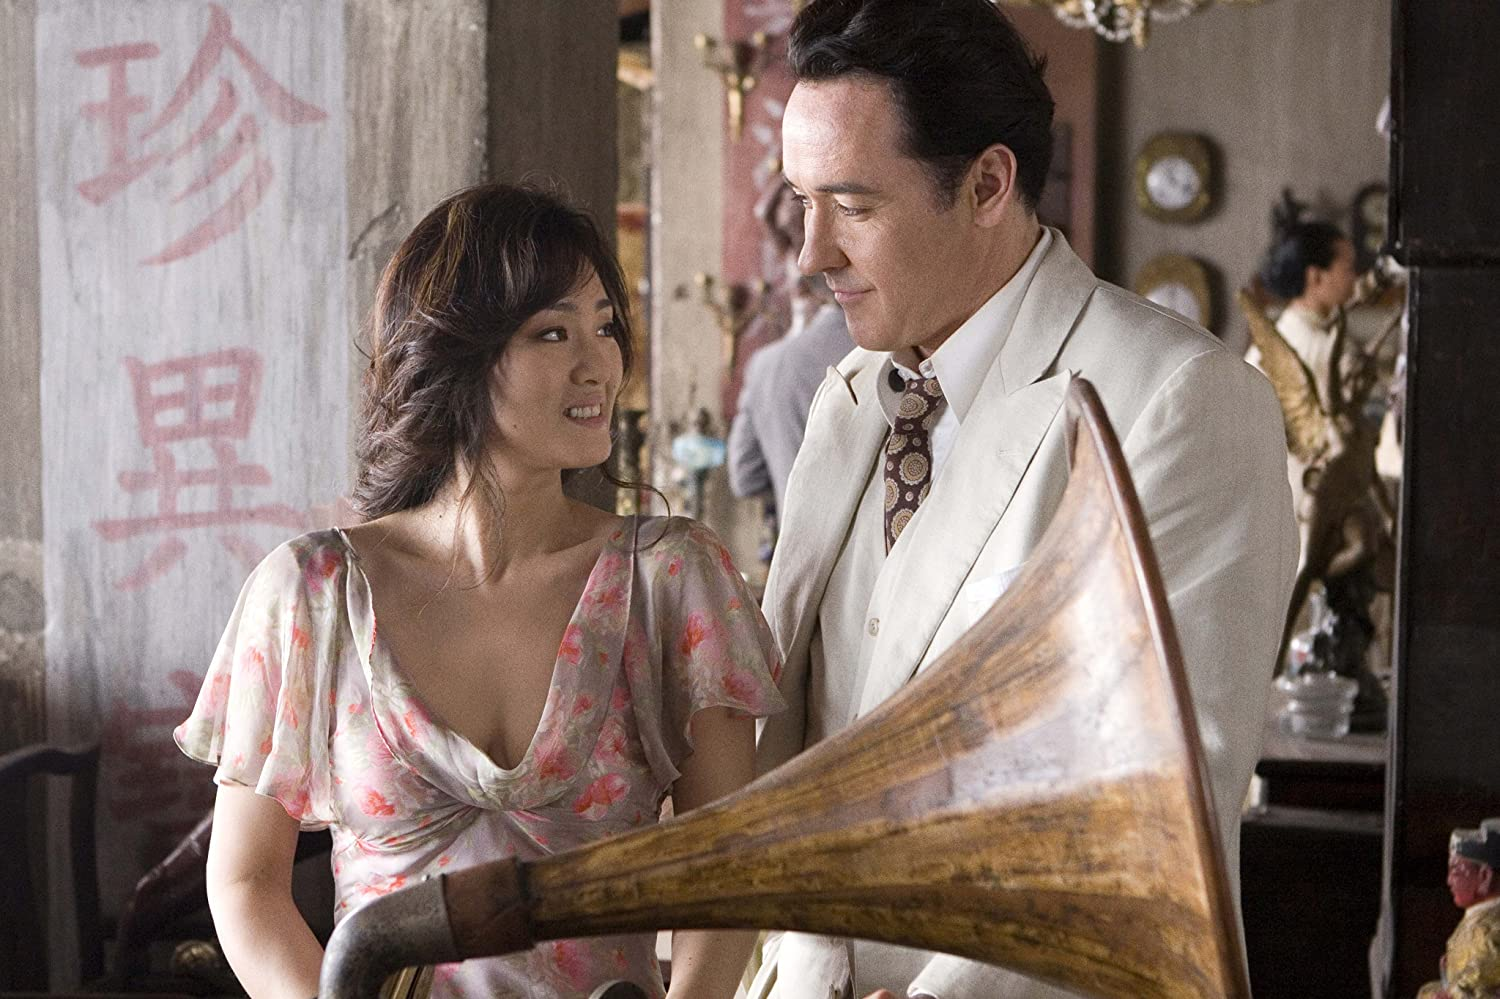 Li Gong and John Cusack in Shanghai (2010)